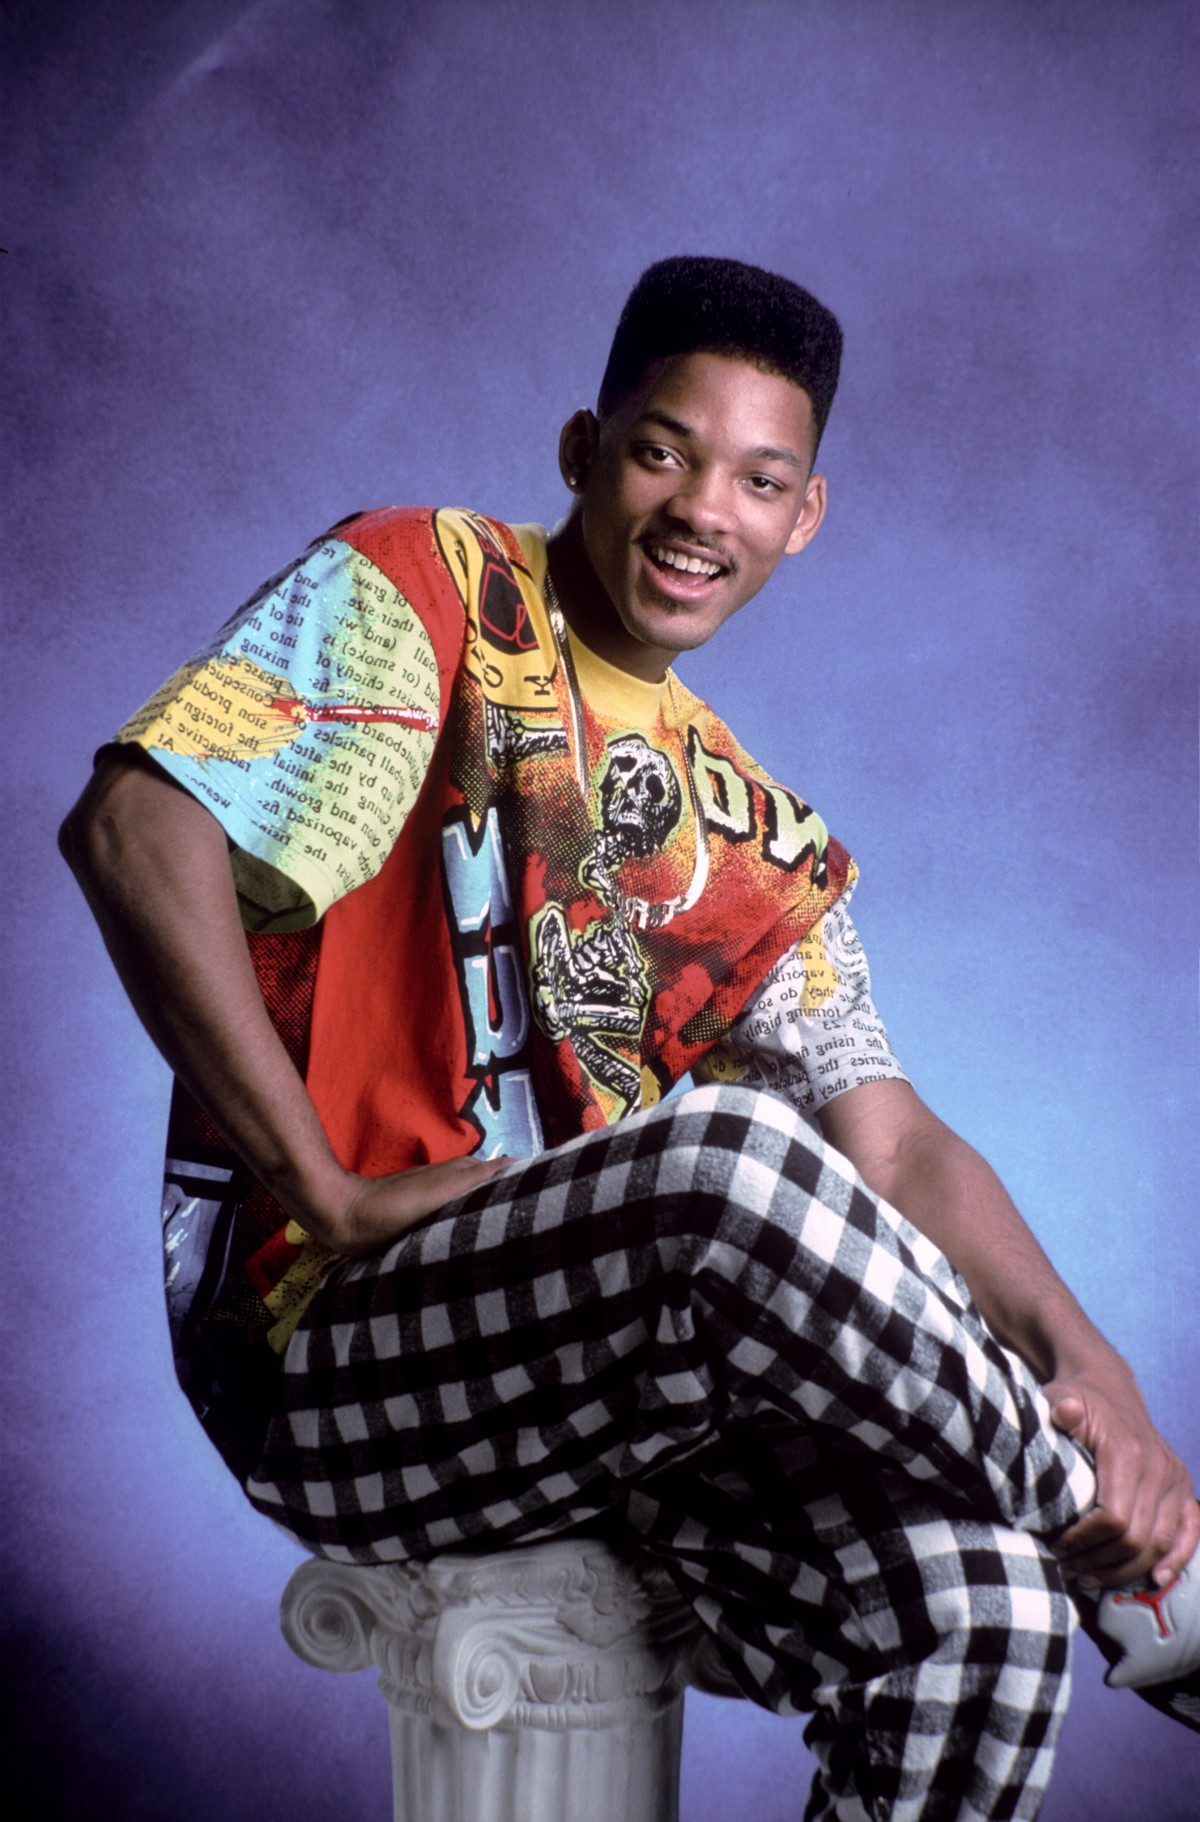 Will Smith to produce 'Fresh Prince of Bel-Air' remake based on a fan's amazing trailer